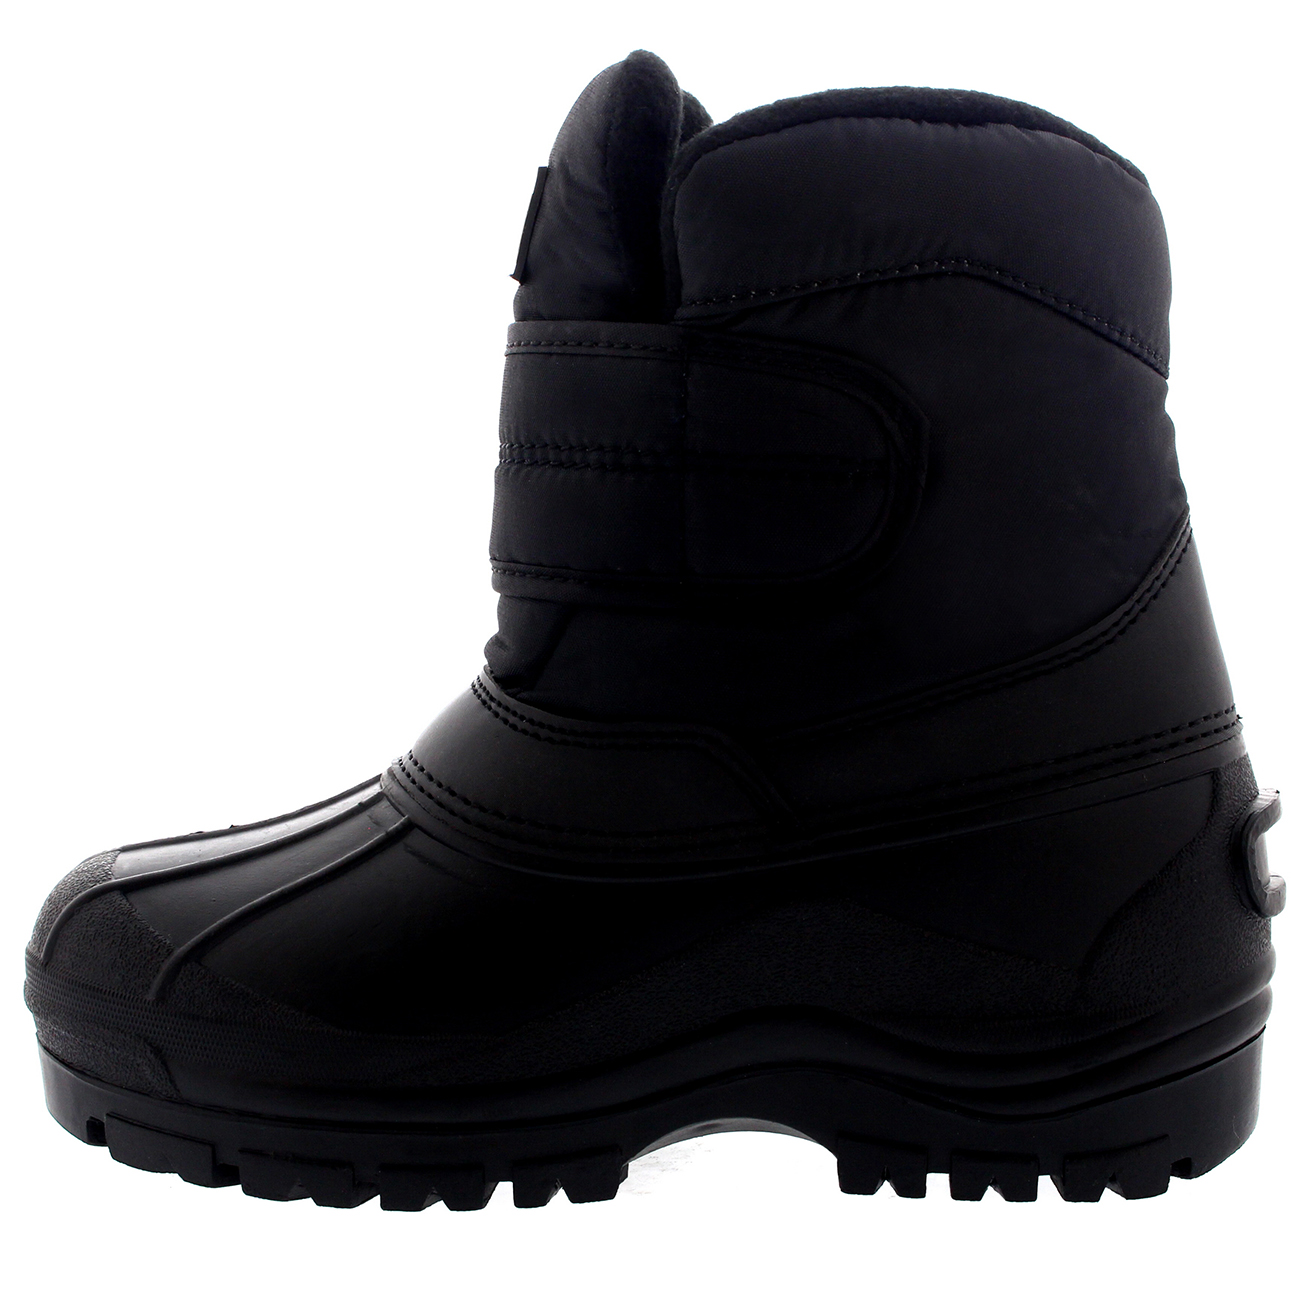 Unisex Kids Nylon Winter Rain Snow Hiker Waterproof Single Strap Boot All Sizes